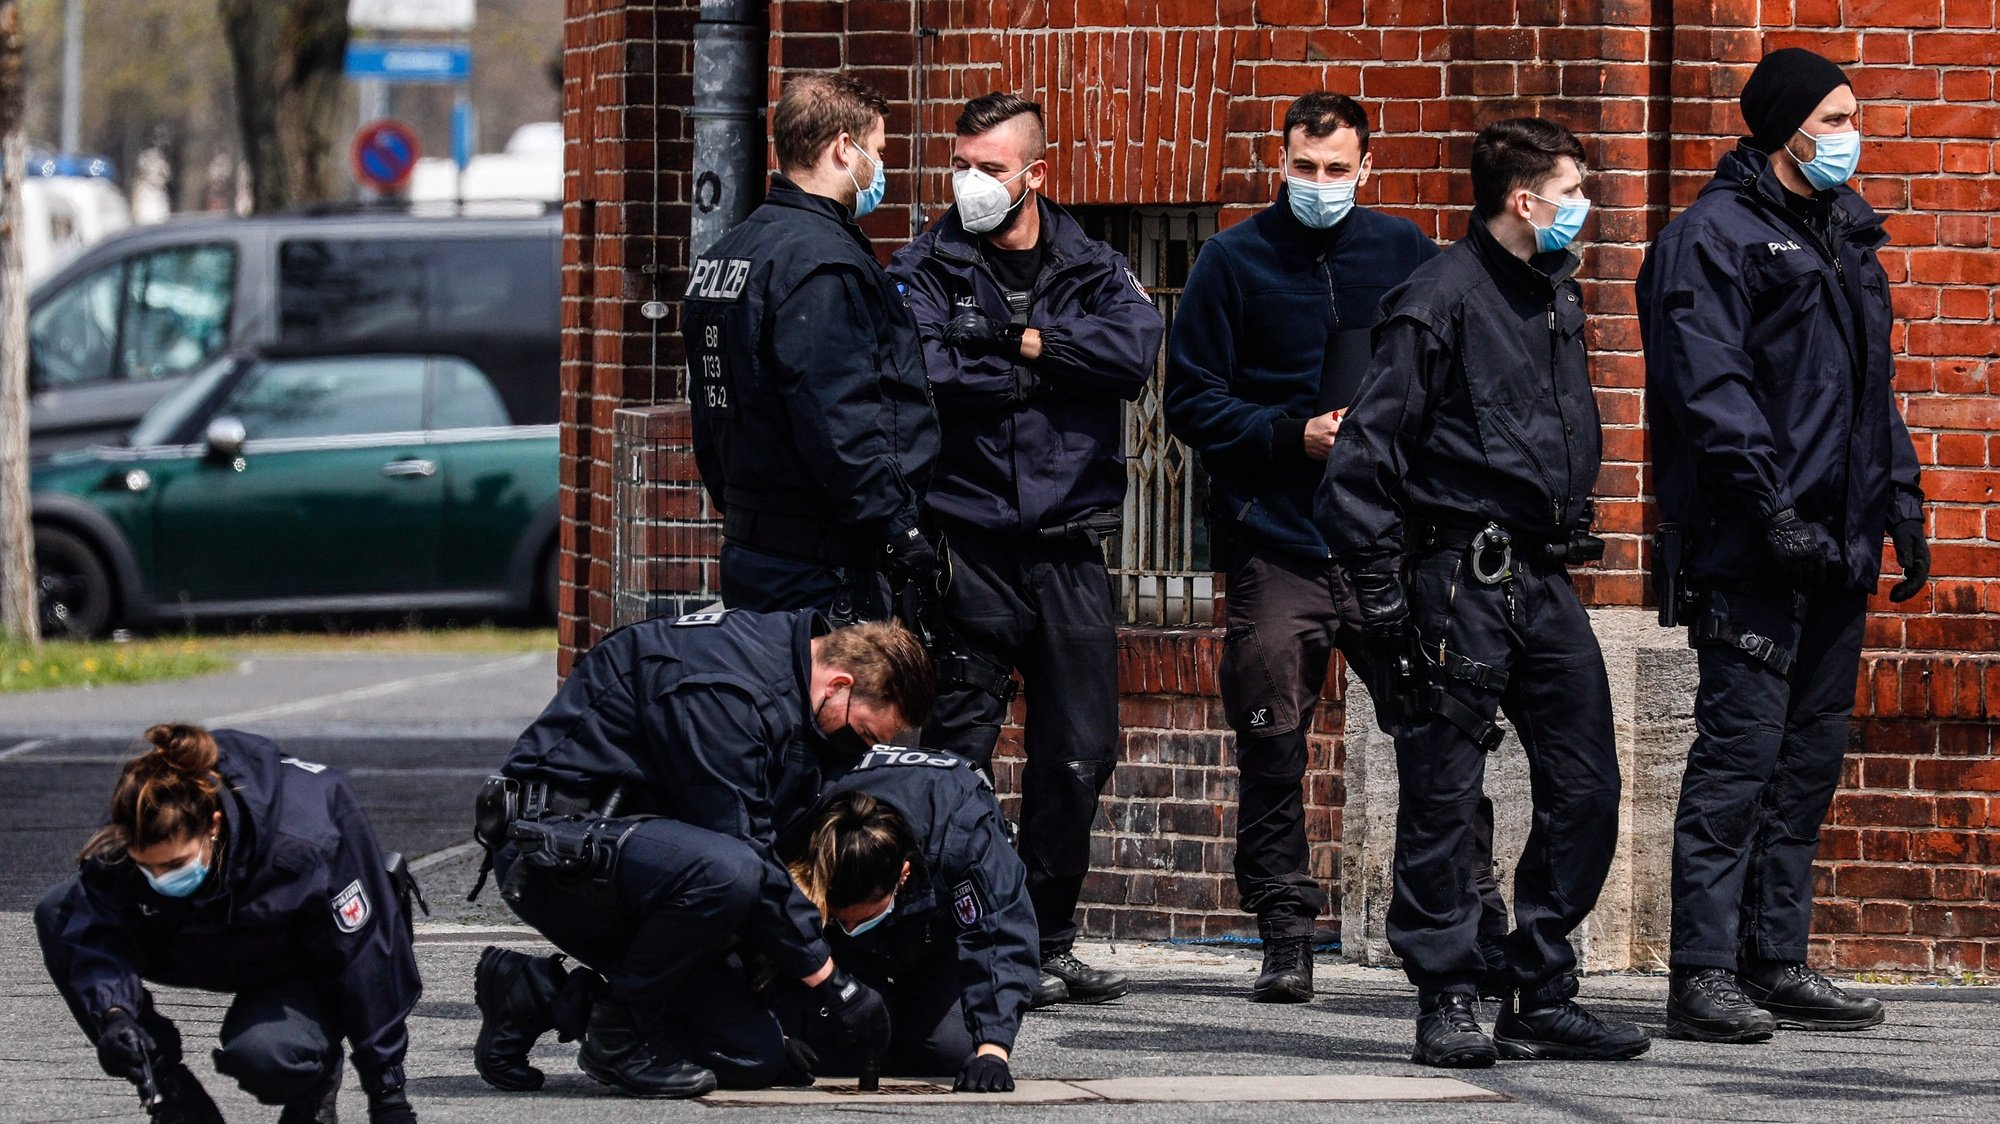 epa09167583 Police investigate in front of Oberlin care Clinic in Potsdam, Germany, 29 April 2021. German police arrested a woman on suspicion of killing four people on late evening of 28 April.  EPA/FILIP SINGER